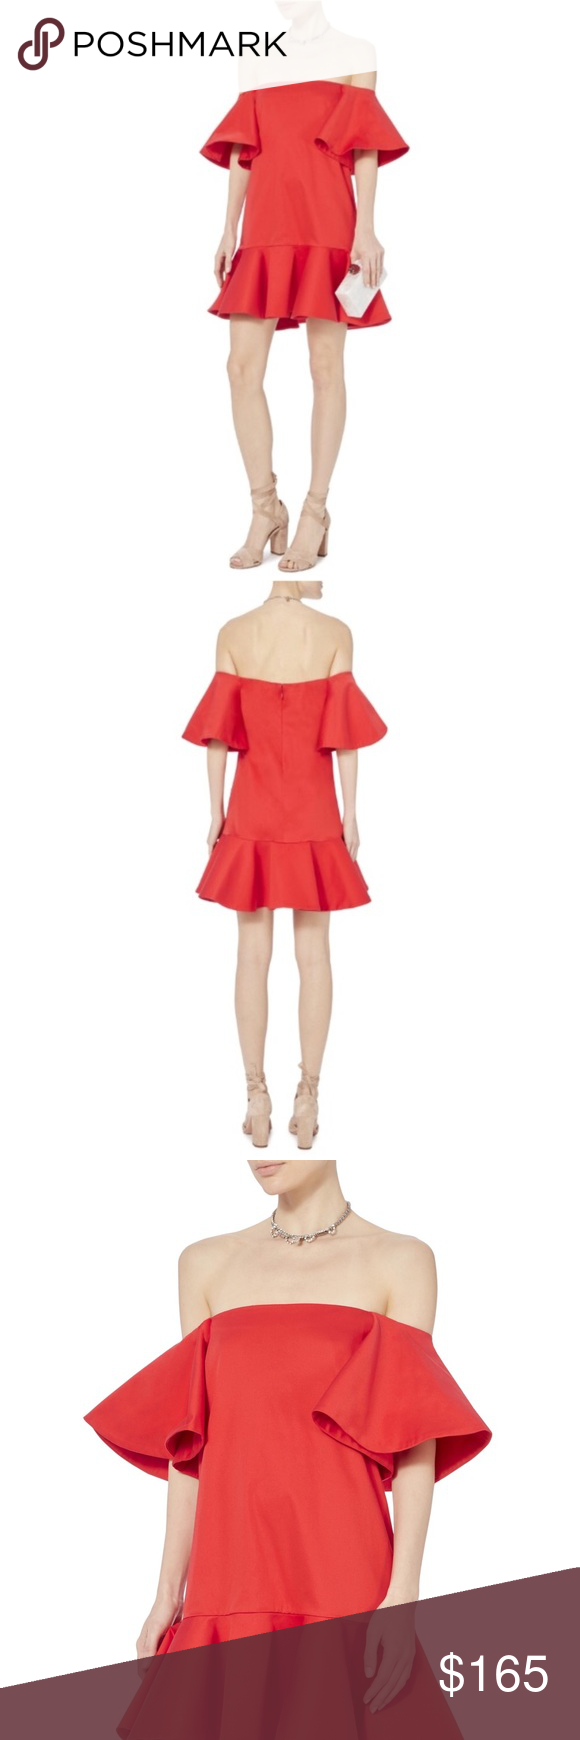 eeaa6fdfd29 Women s Off Shoulder Dress Alexis Red Aliana Off Shoulder Dress. With a  pretty satin finish